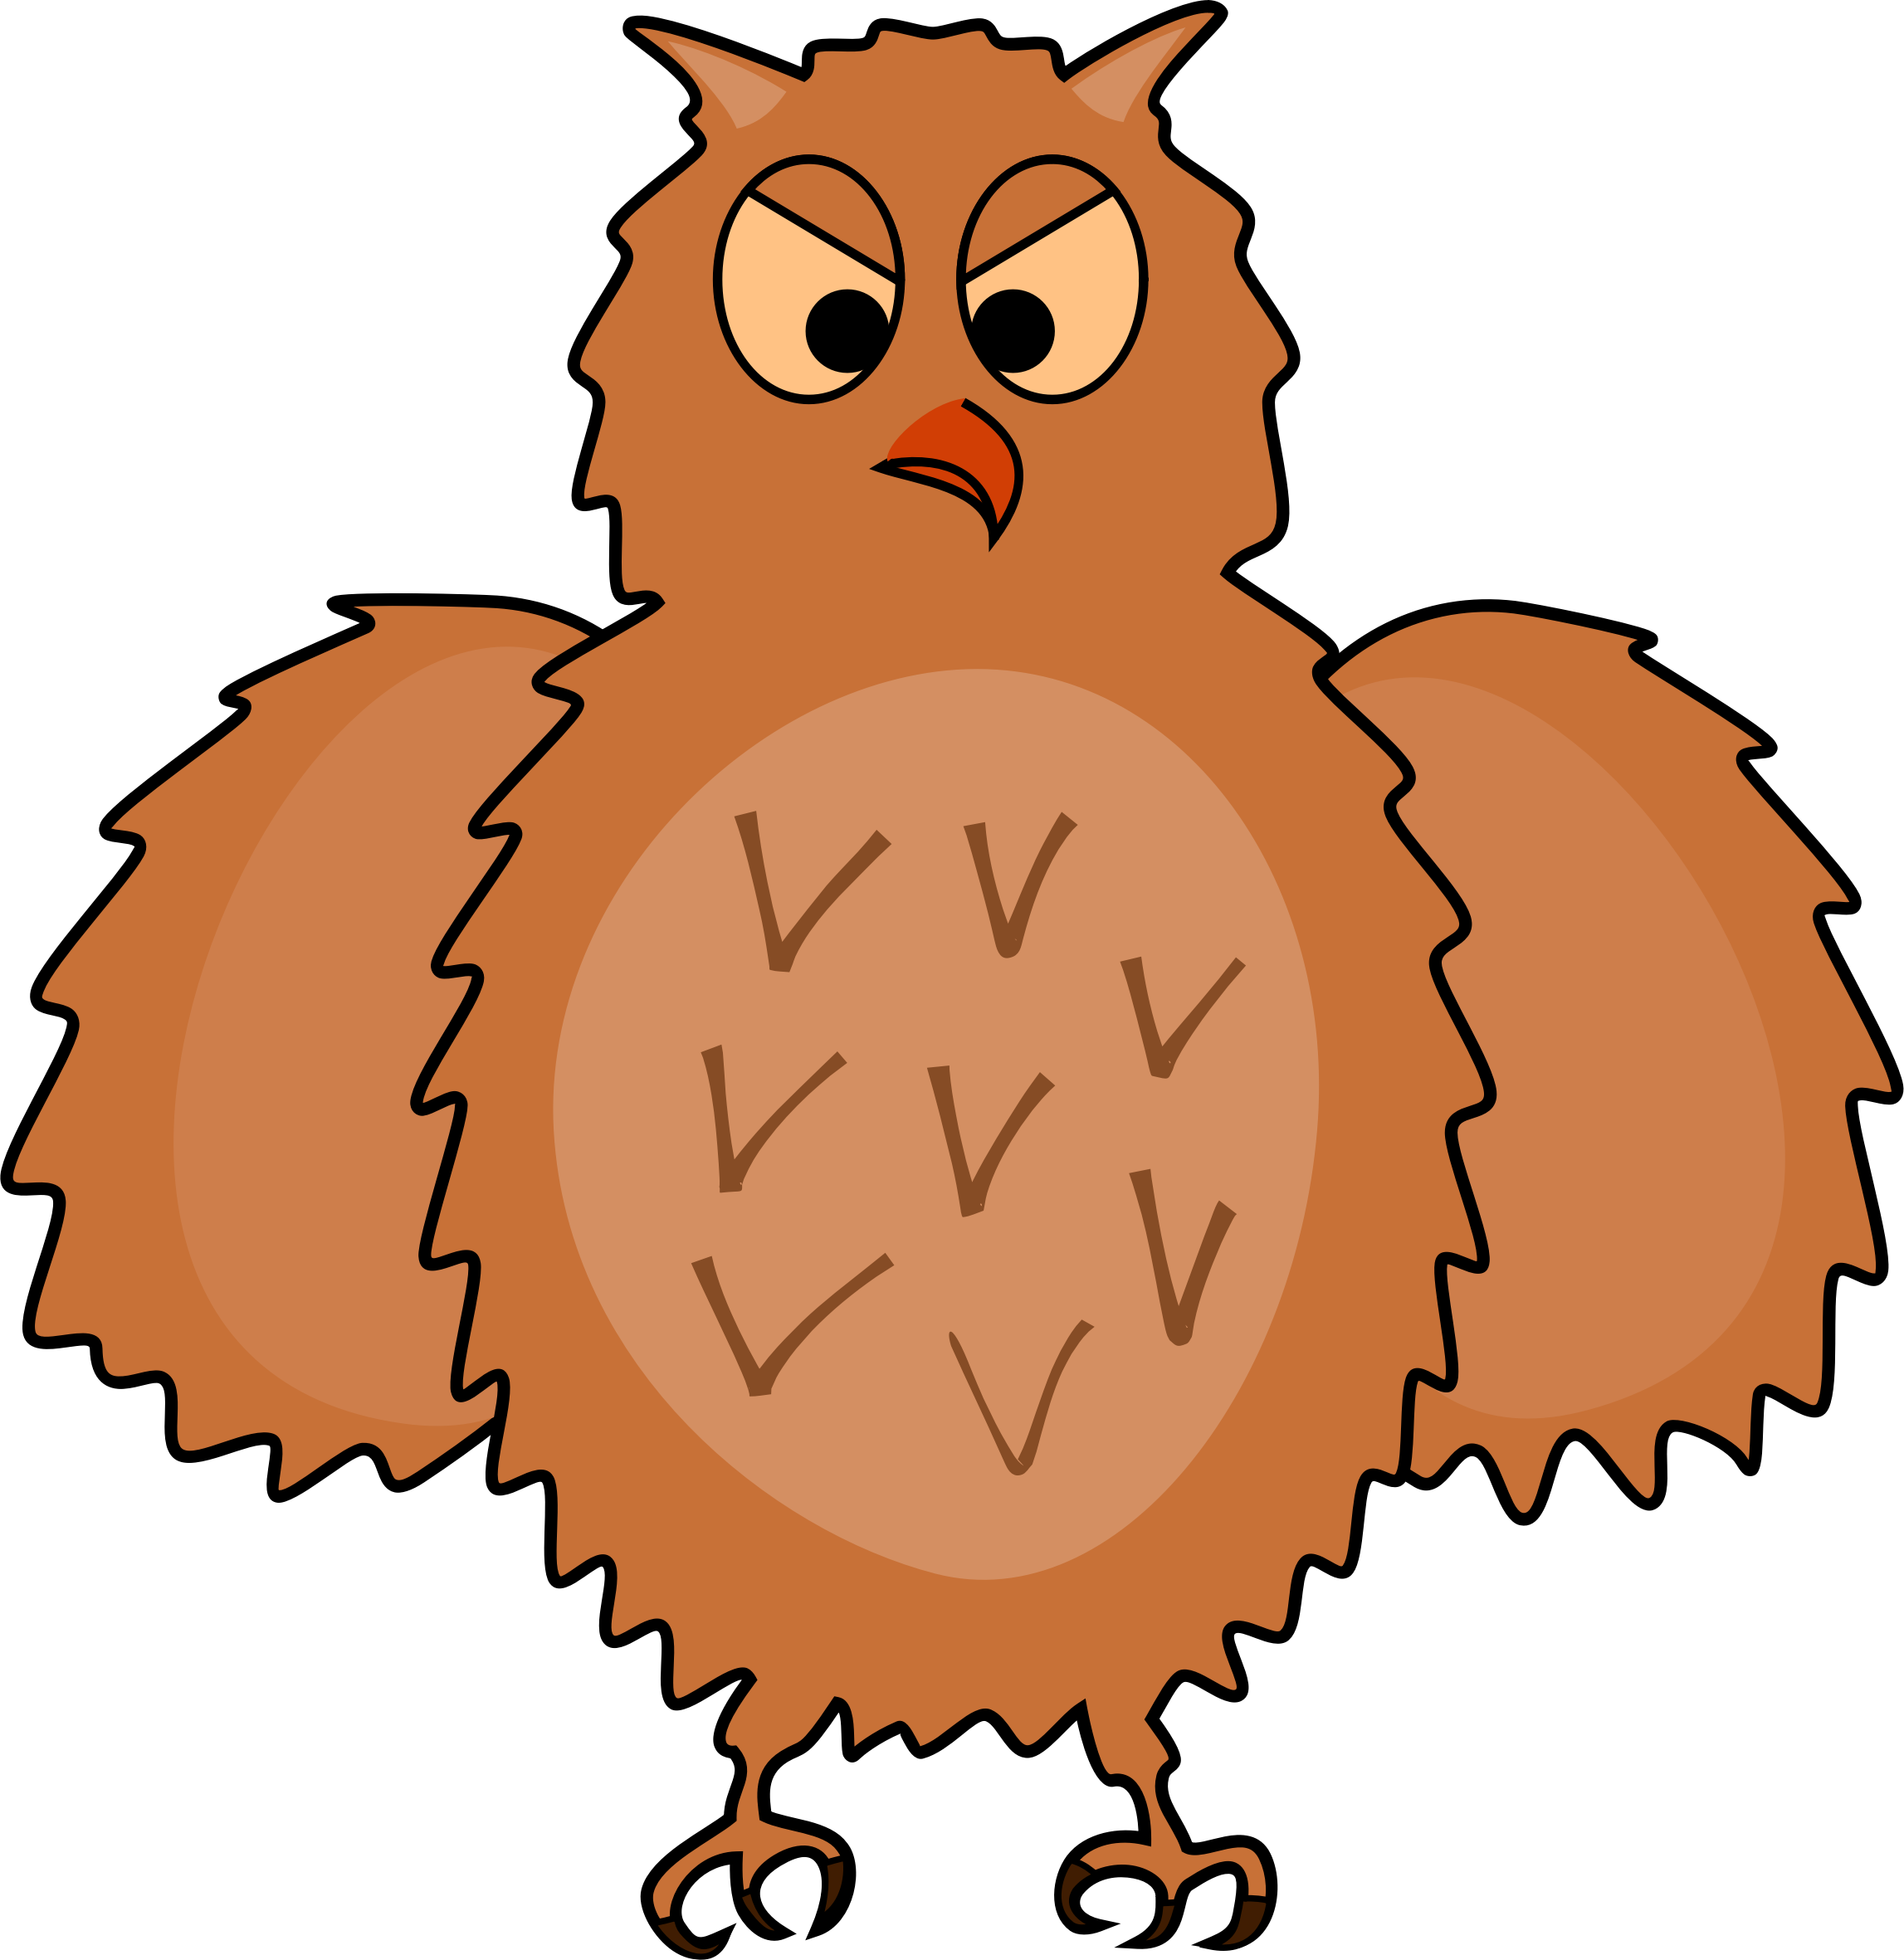 clip Spread clipart. Enraged owl front view